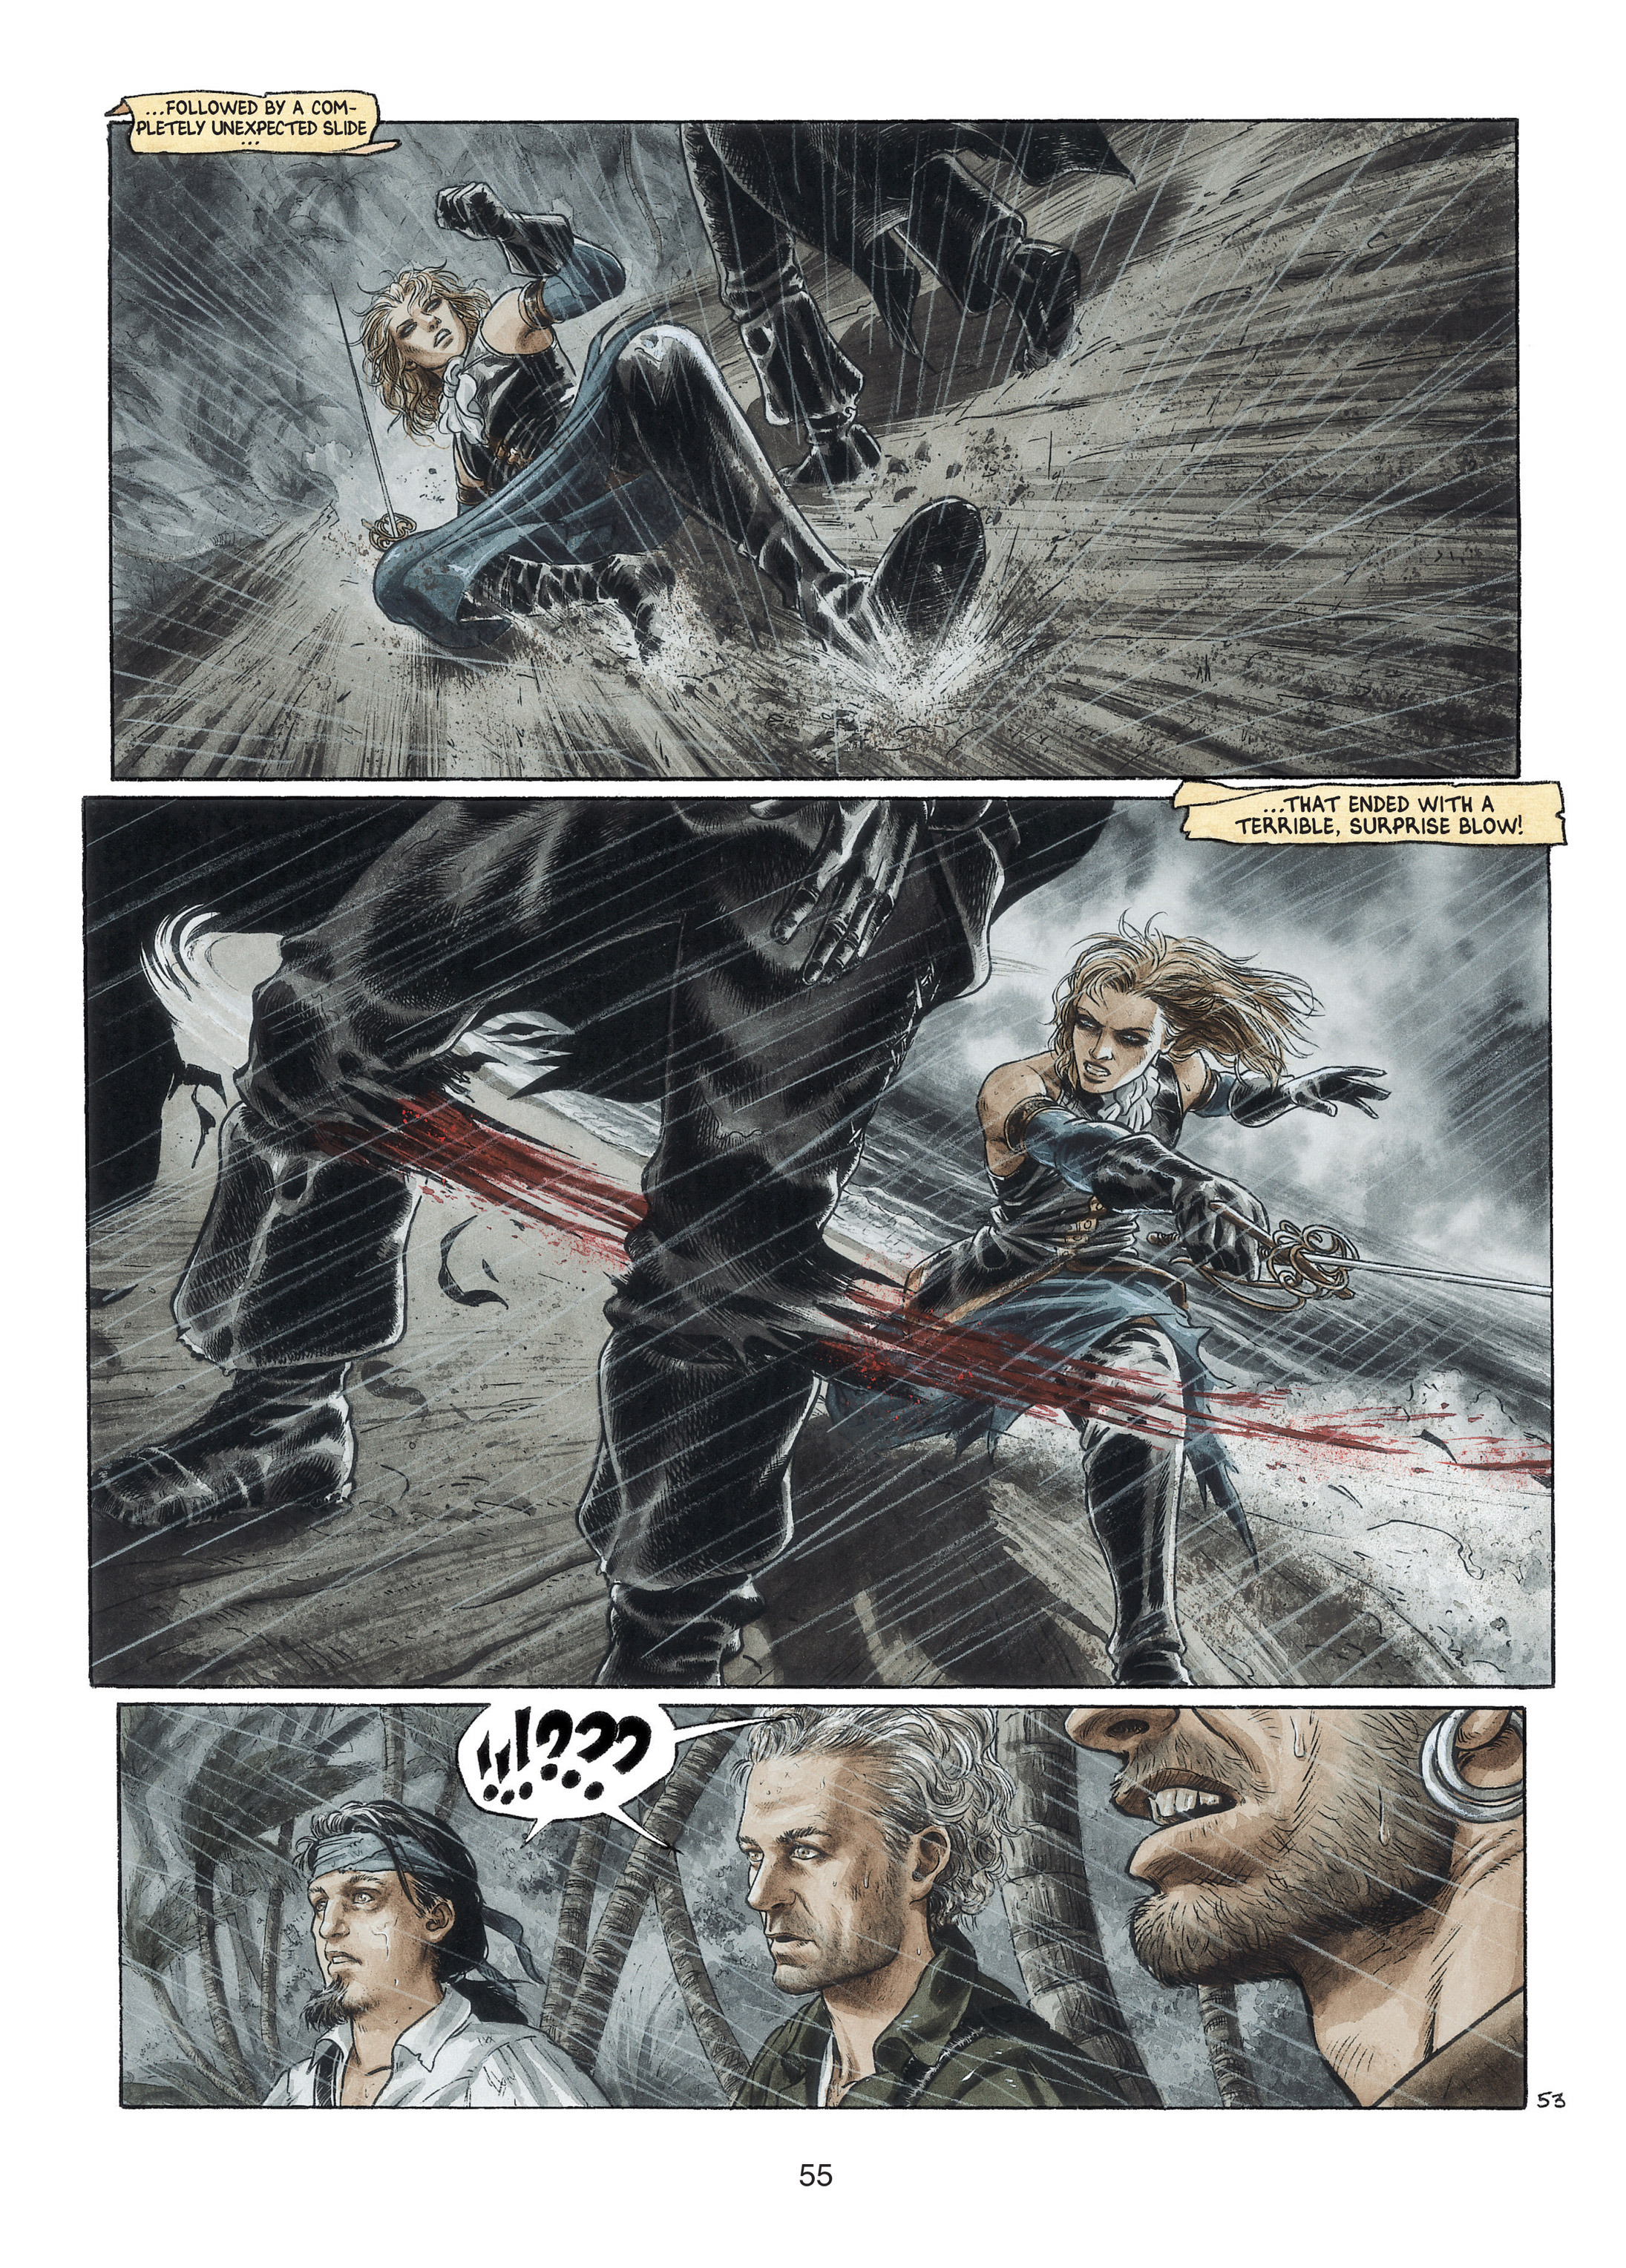 Read online Barracuda comic -  Issue #3 - 56